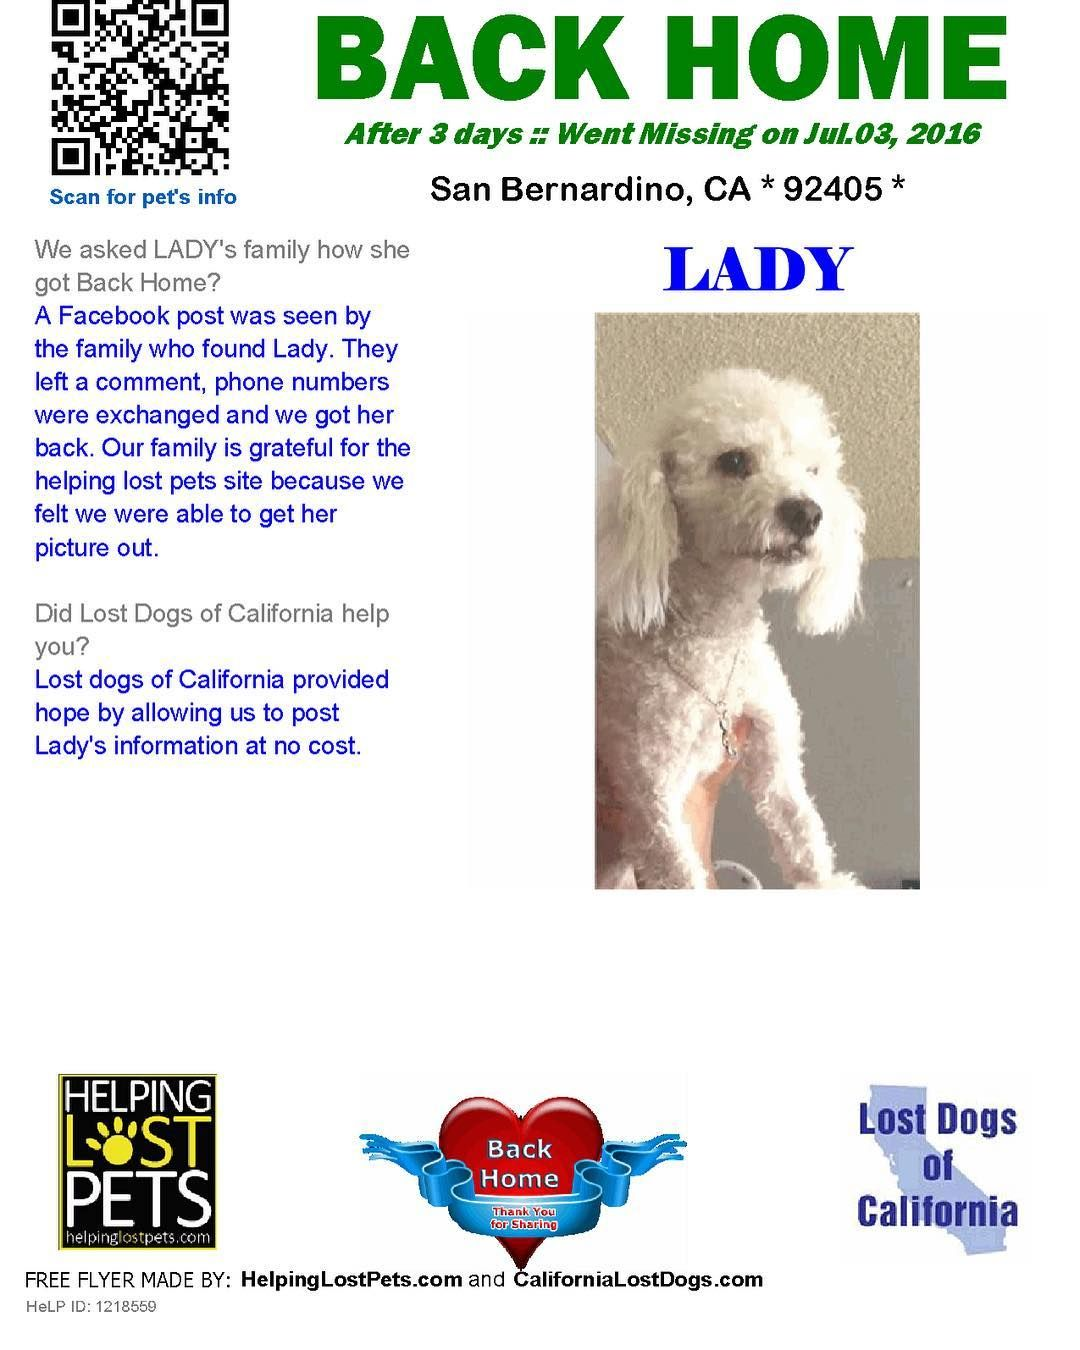 Backhome Lady Poodle From Sanbernardino Ca Has Been Reunited With Her Family Lost 7 3 16 Back Home 7 6 16 A Losing A Dog Losing A Pet Pets